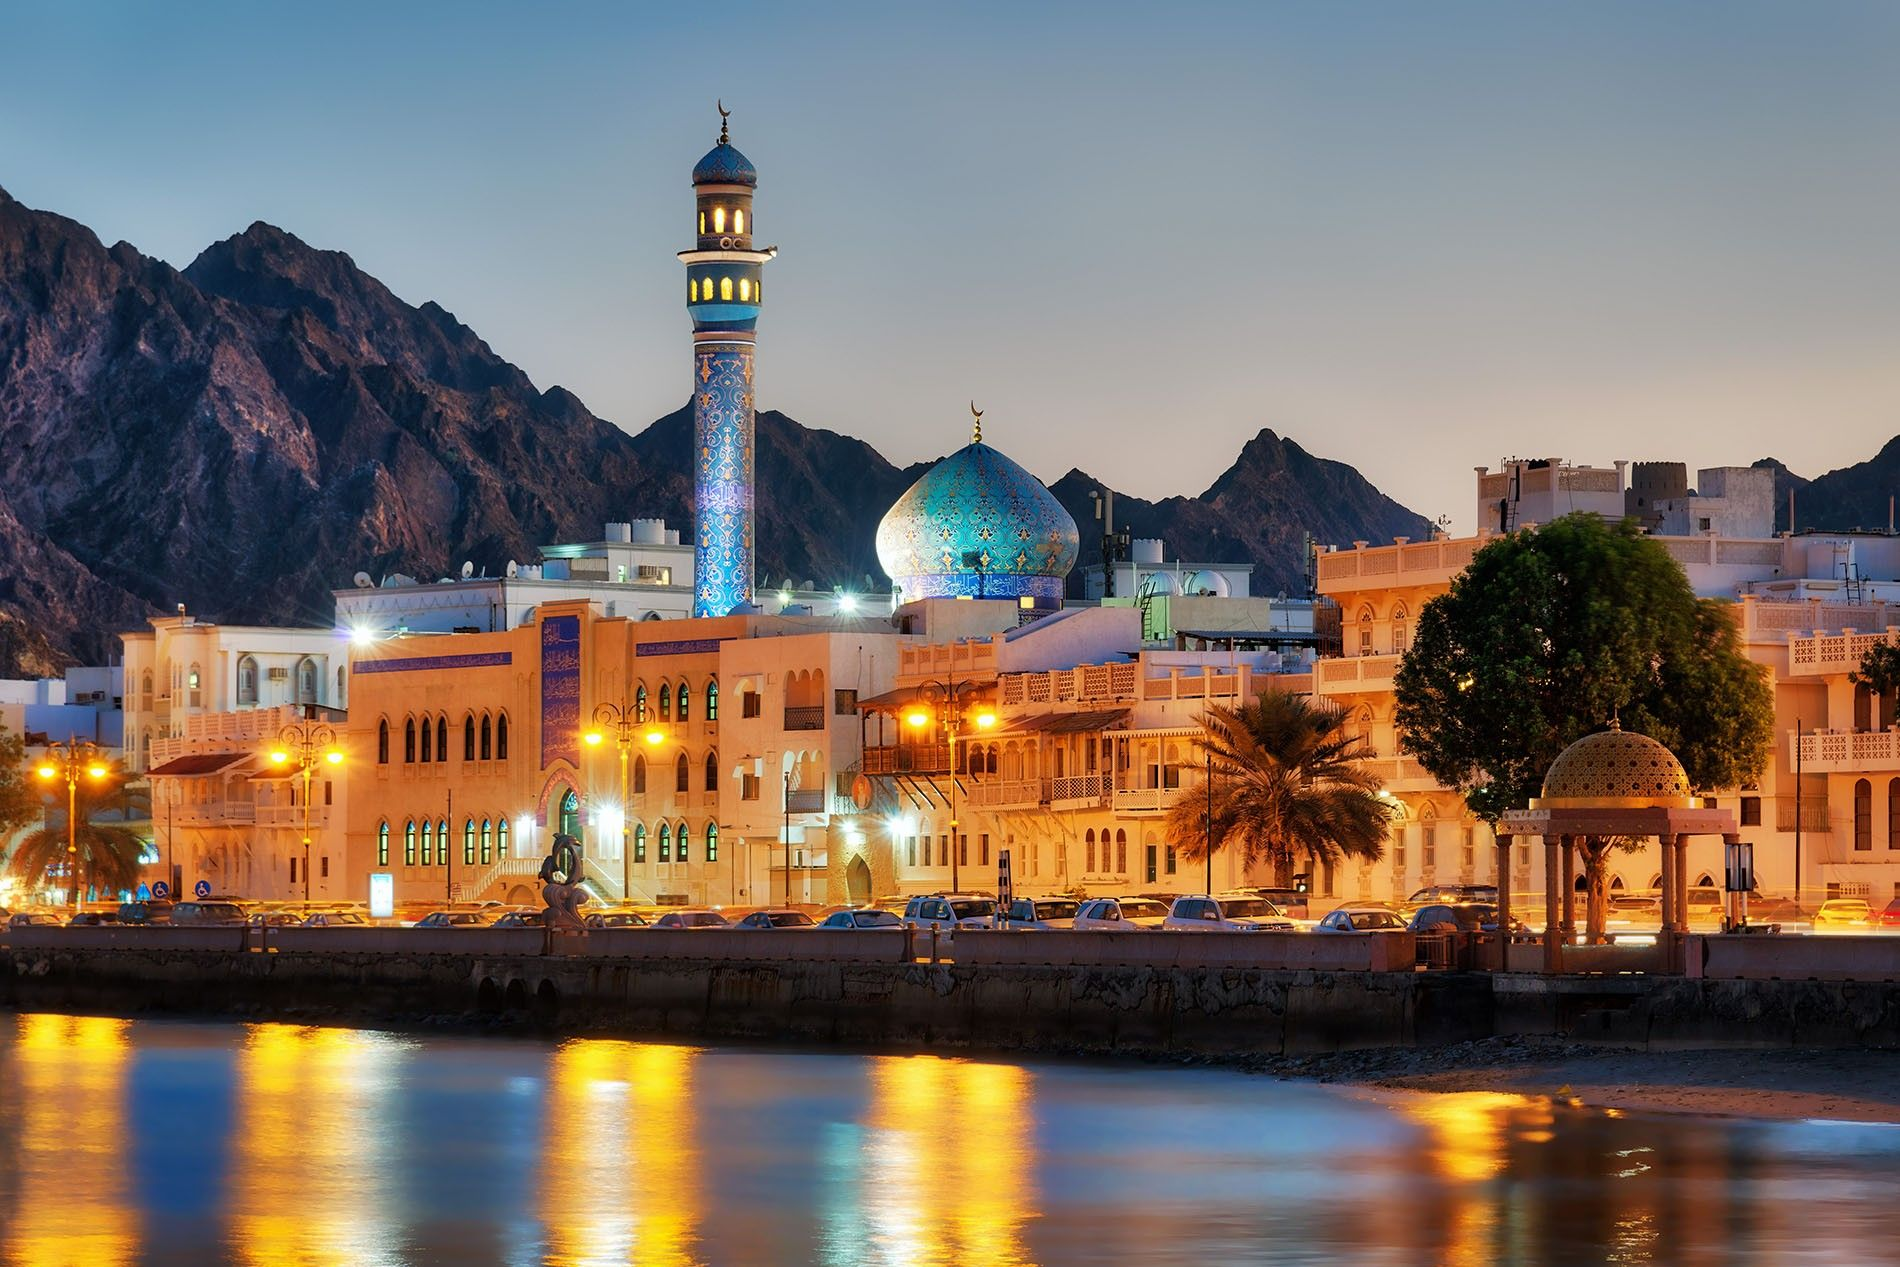 Muscat, Oman's capital, sits on the Gulf of Oman and is backed by mountains and desert.